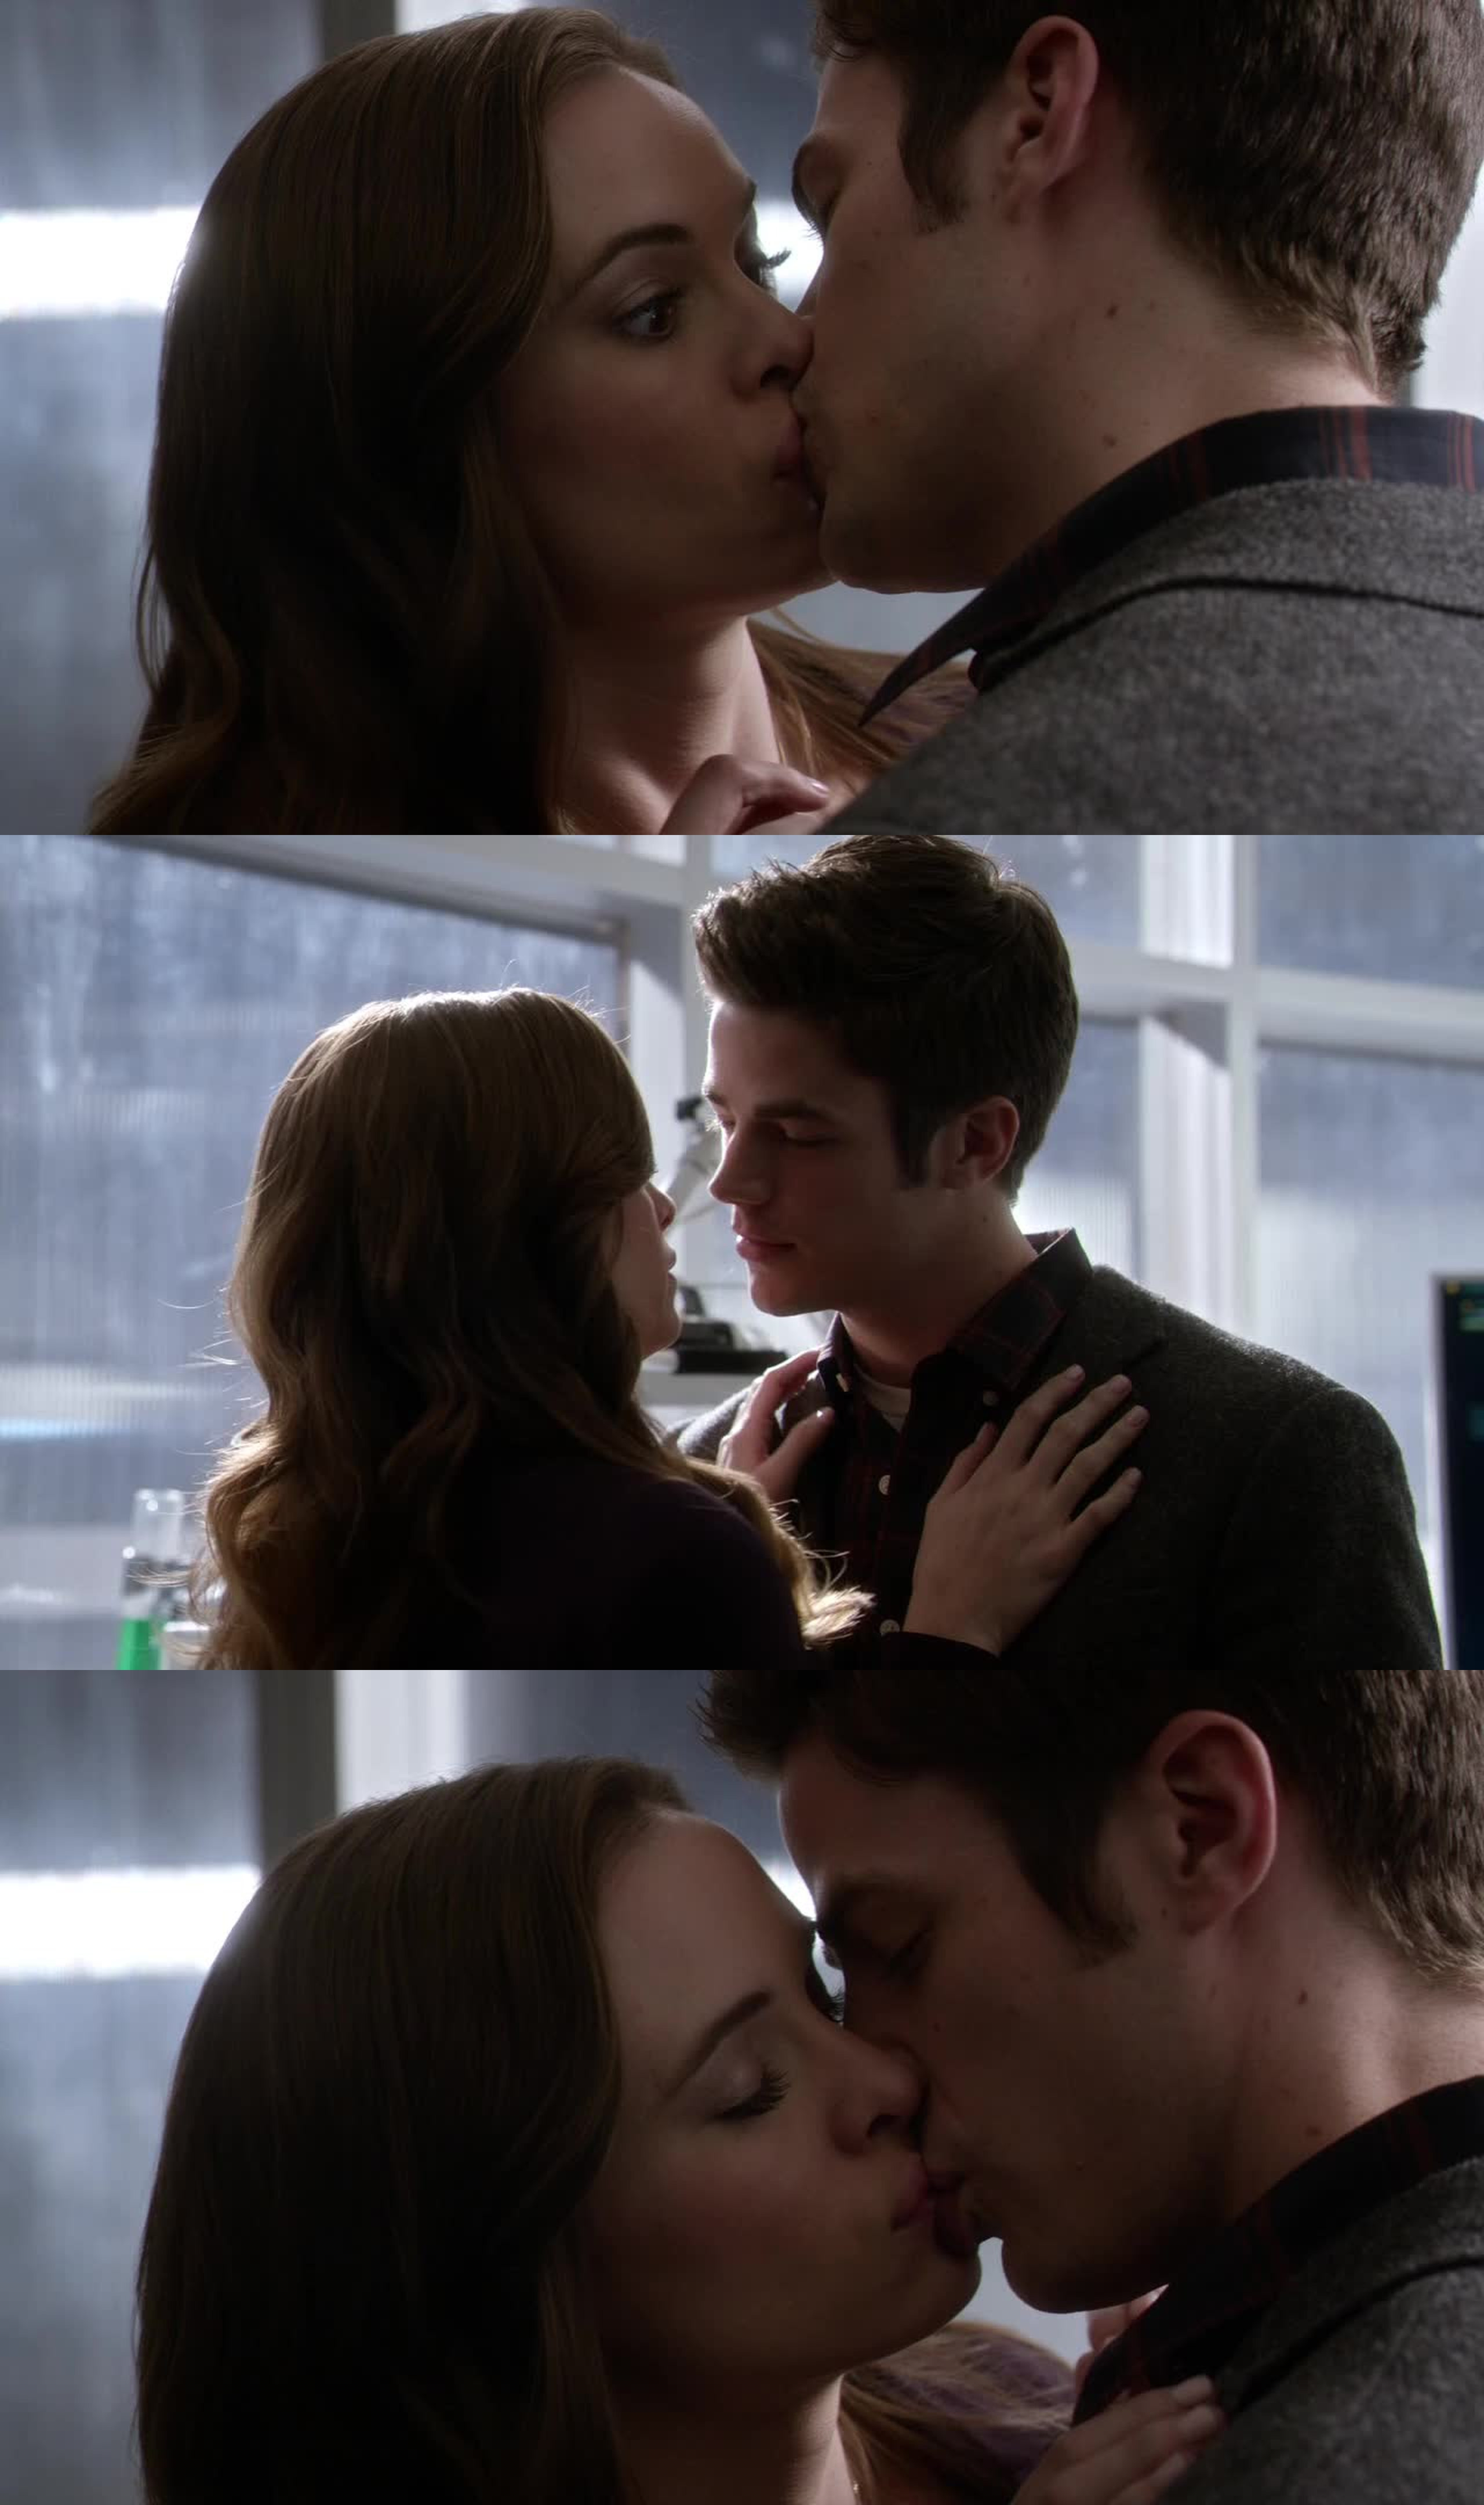 Not a real snowbarry's kiss,  I'm so disappointed :(